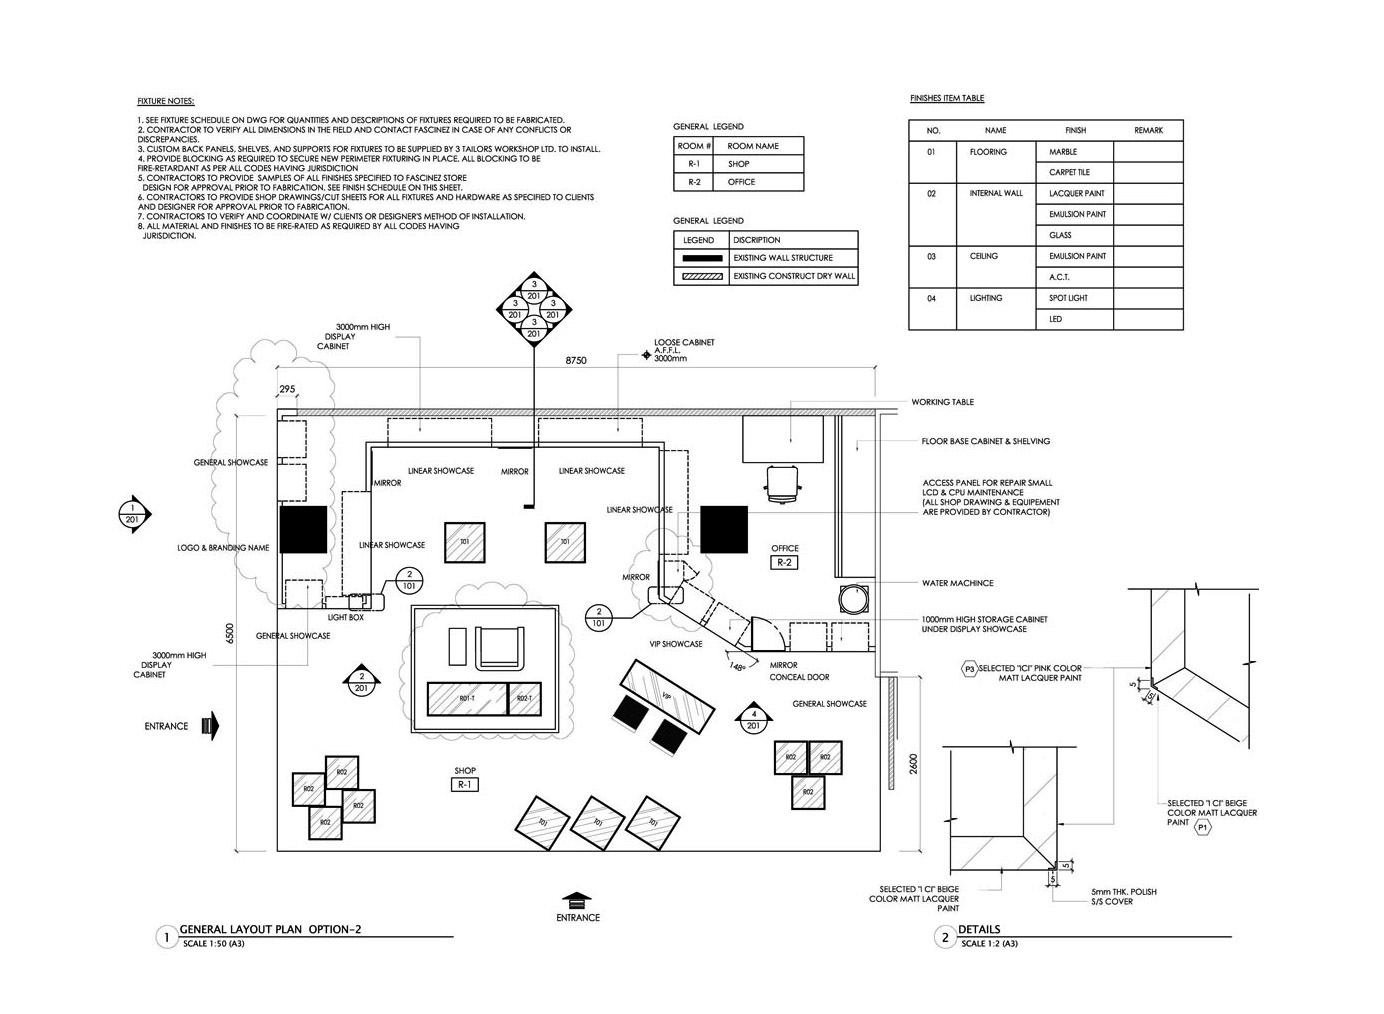 Yrenec interior design construction drawings and millwork - General notes for interior design drawings ...